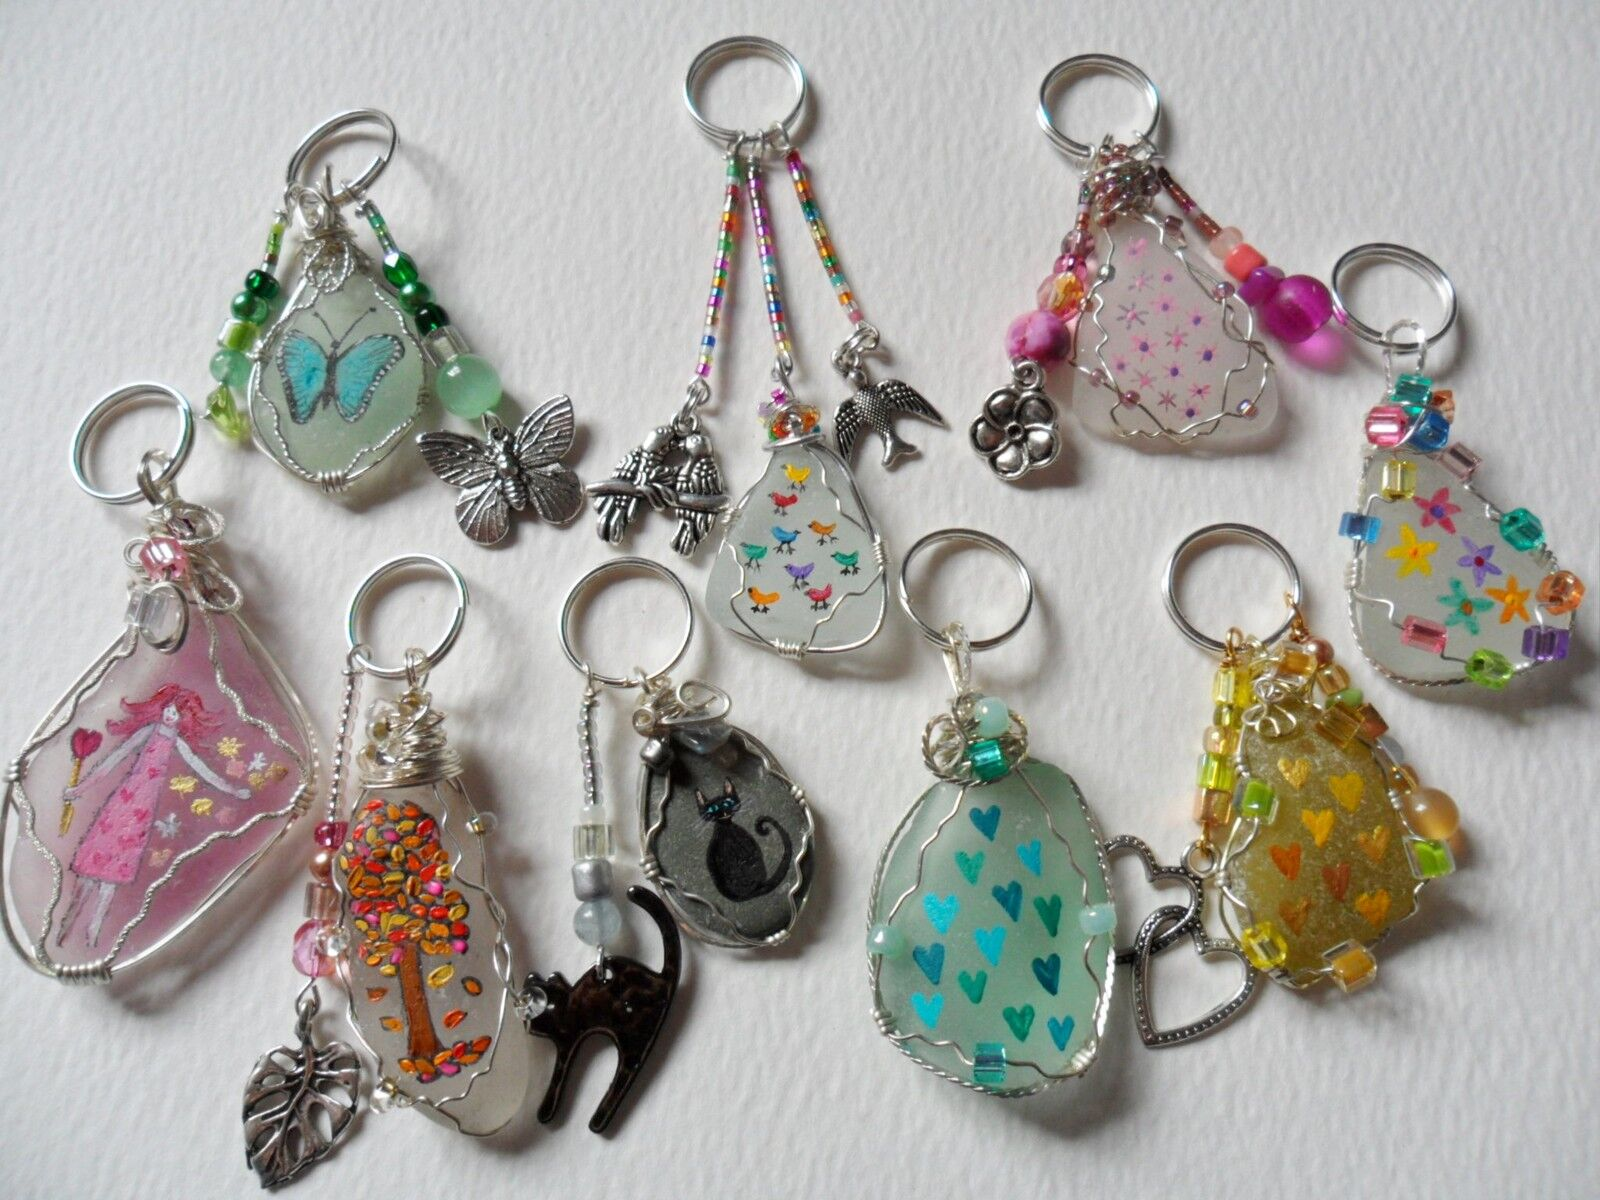 Hand painted sea glass & beach pottery bag charms - choice of designs